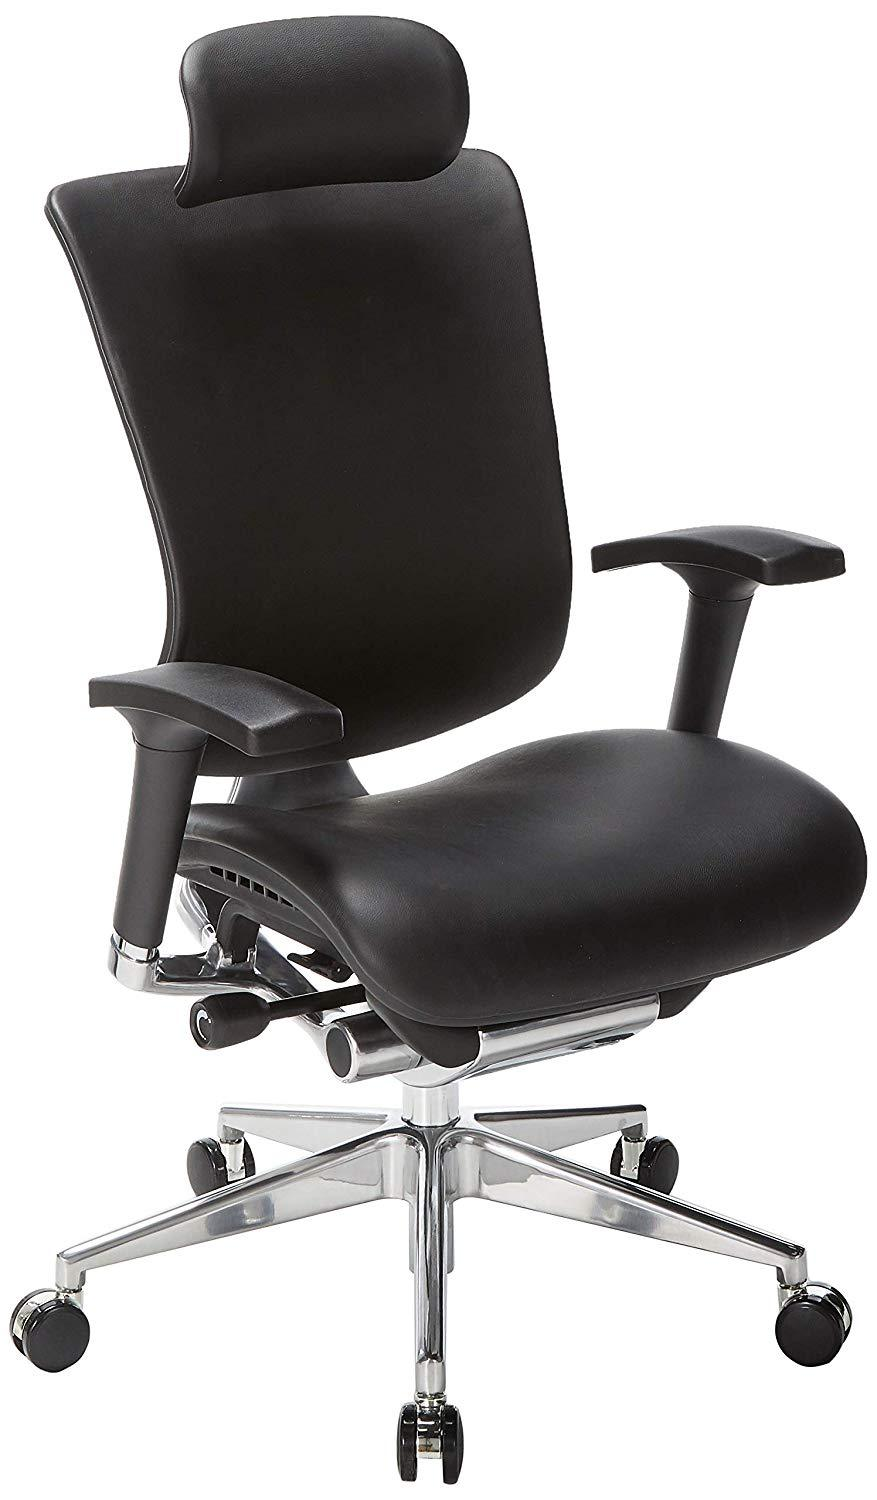 Ergonomic Chairs - GM Seating - Dreem  III Leather Series Executive Hi Swivel Chair Chrome Base With Headrest